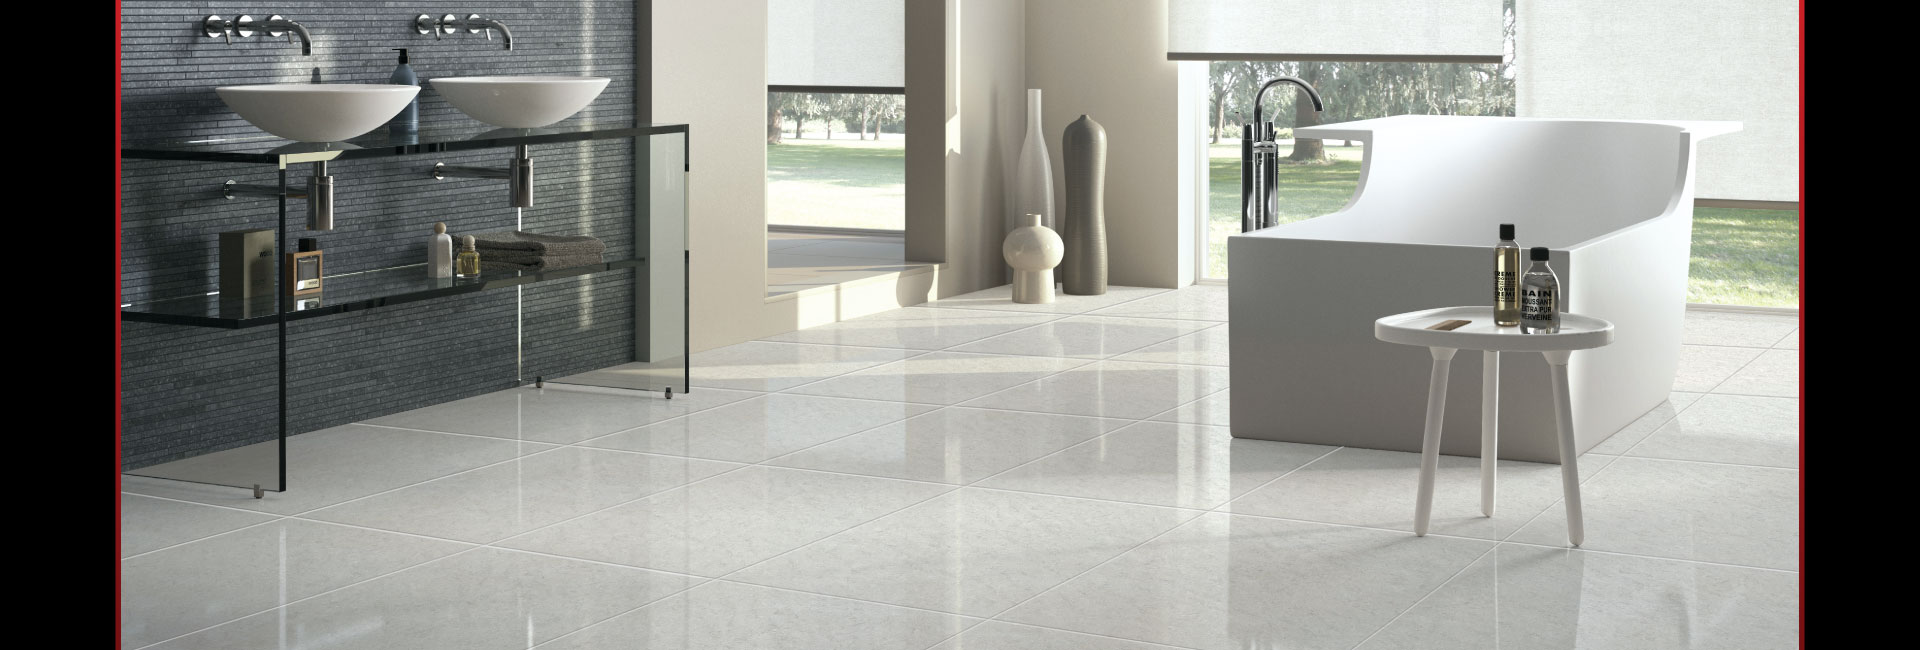 Porcelain, Mosaic, Ceramic and much more!